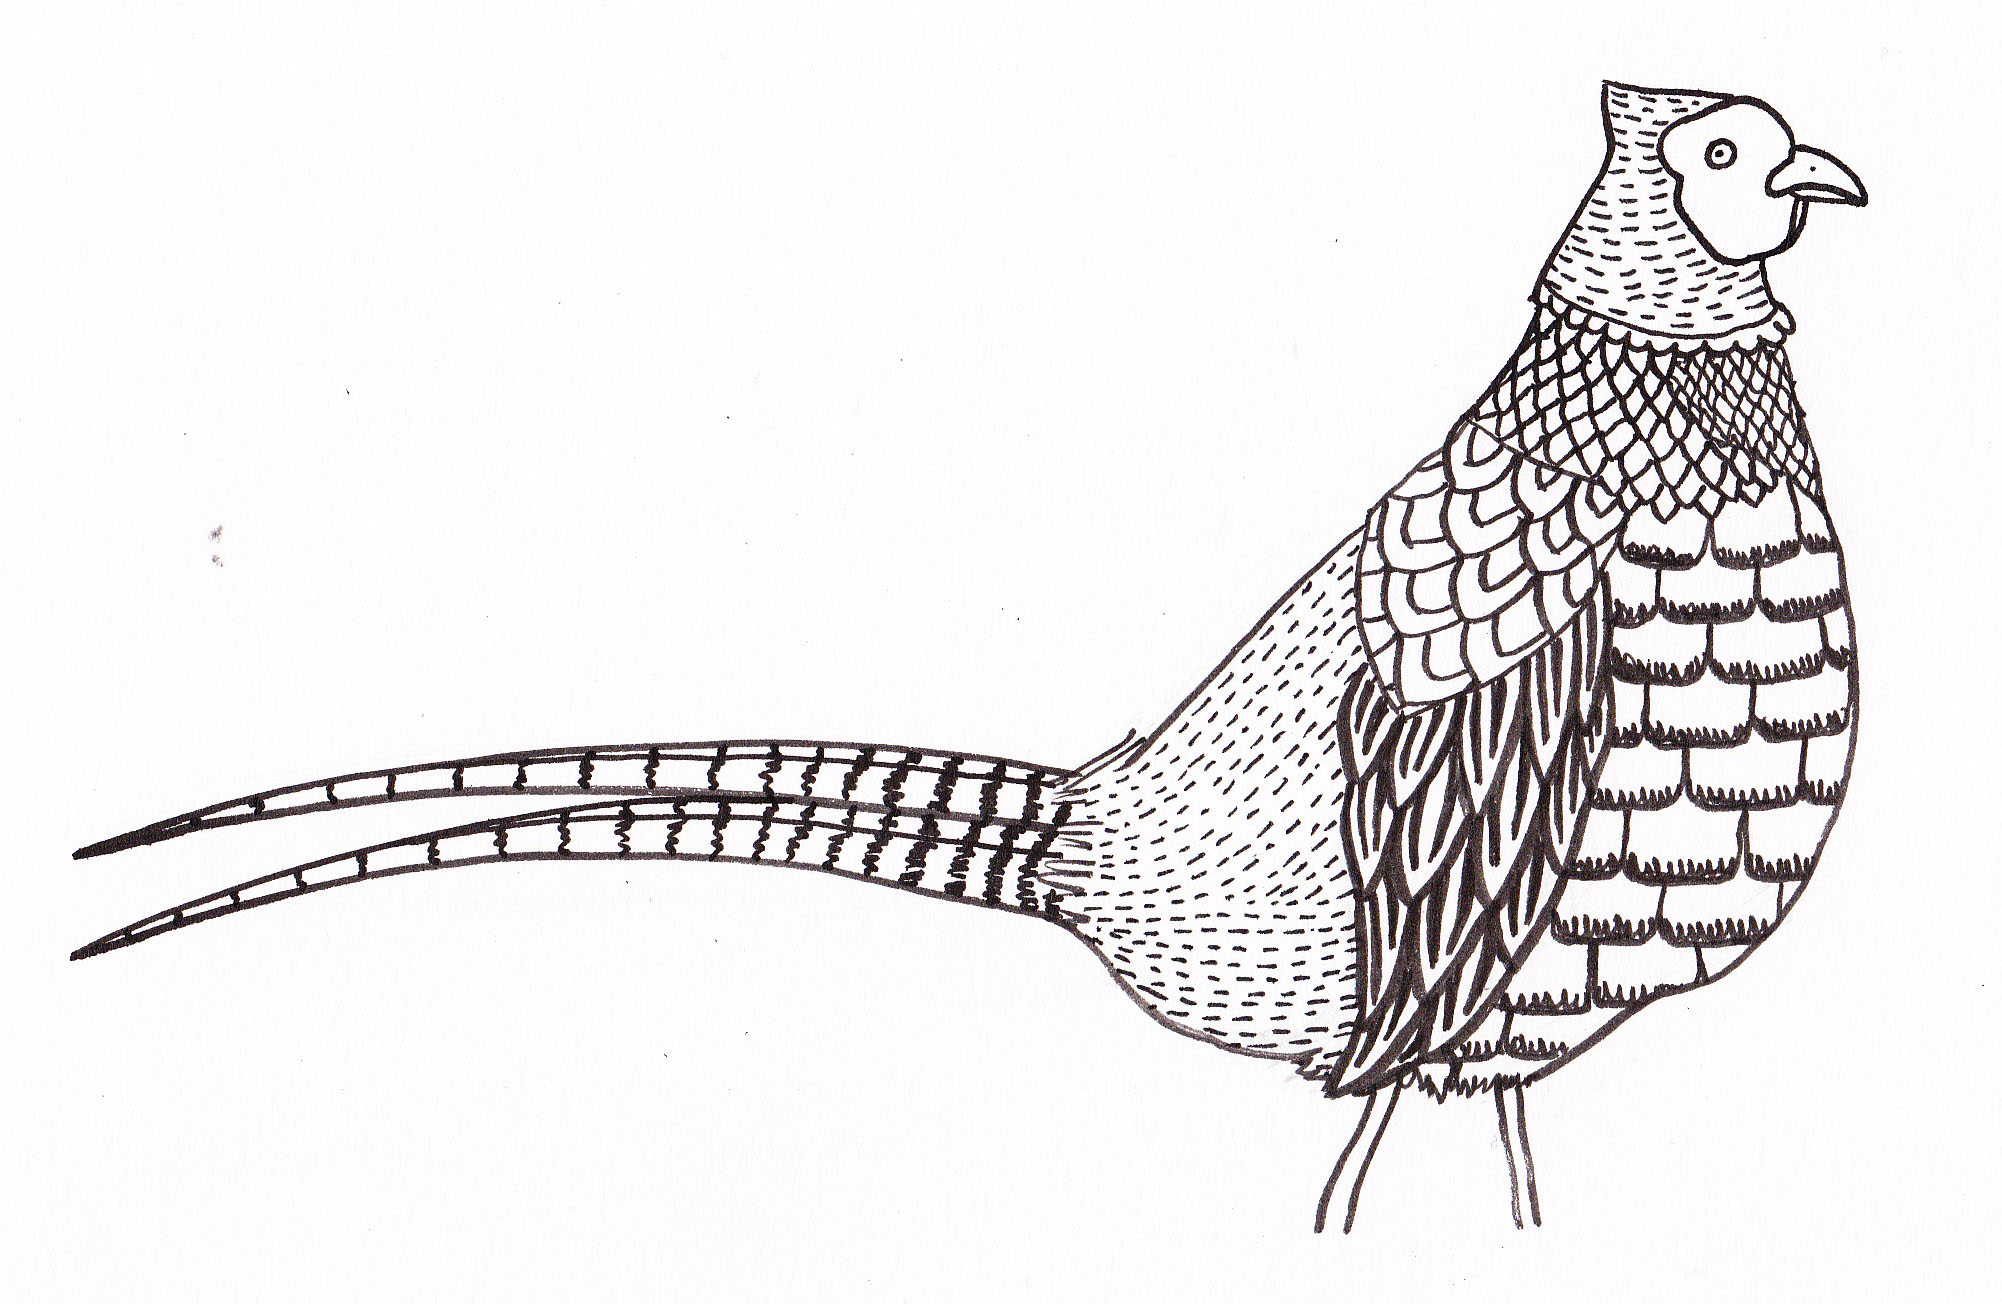 Green Pheasant Drawing moreover Squid further Story details further Otodus 115252487 further Stock Photos Cute Shark Vector Image5726513. on blue whale animals